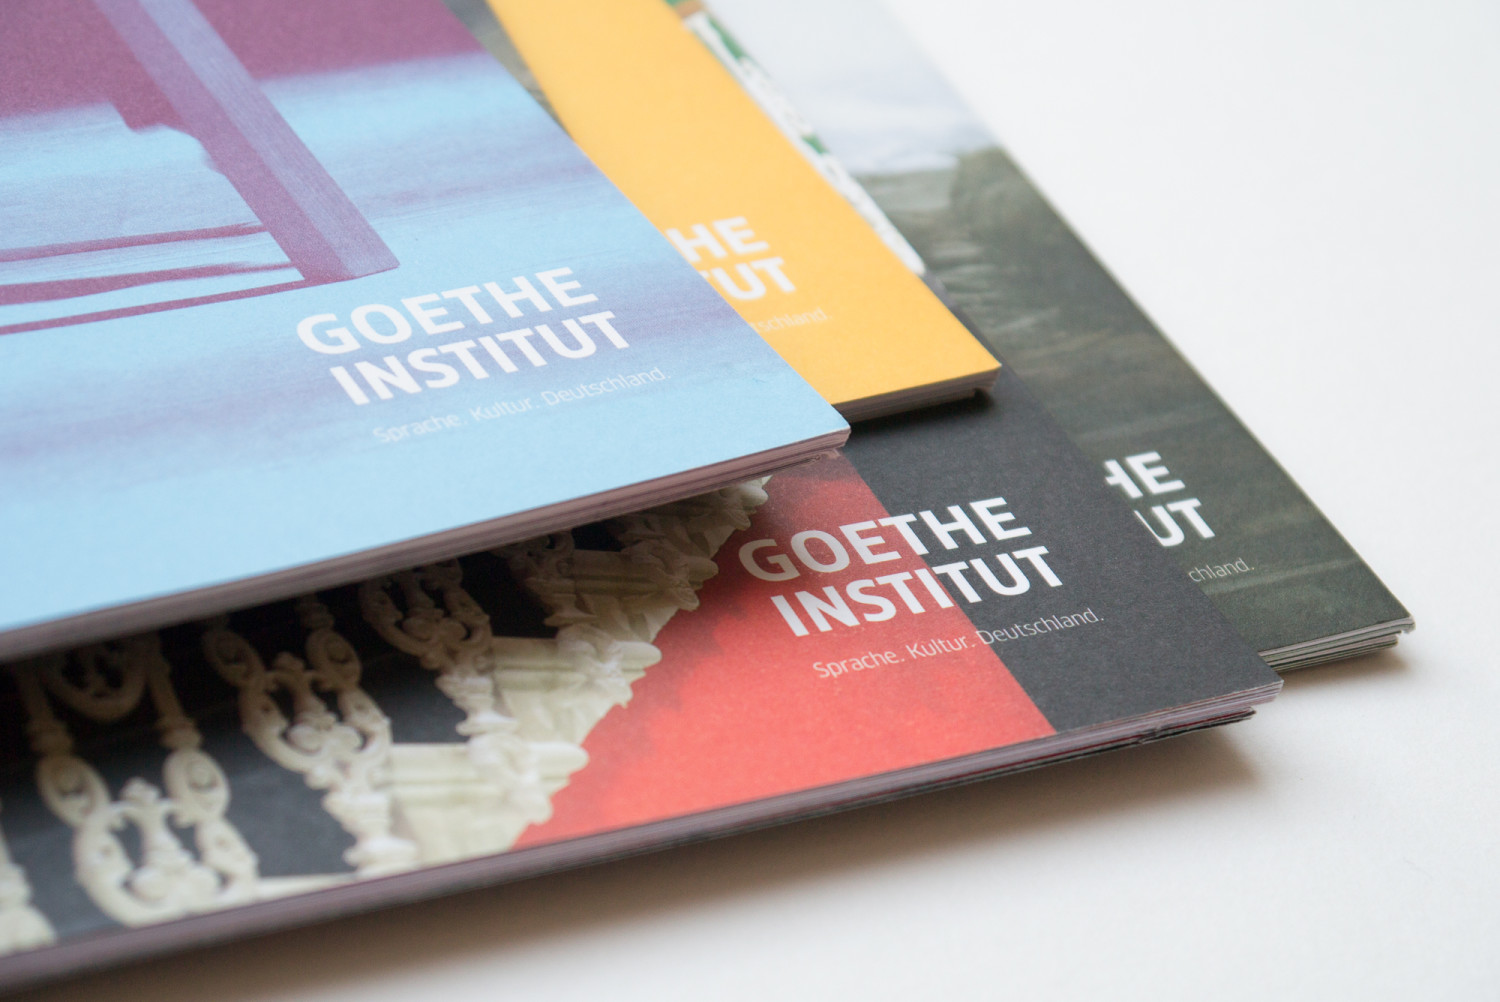 Goethe-Institut London programme design by Park Studio